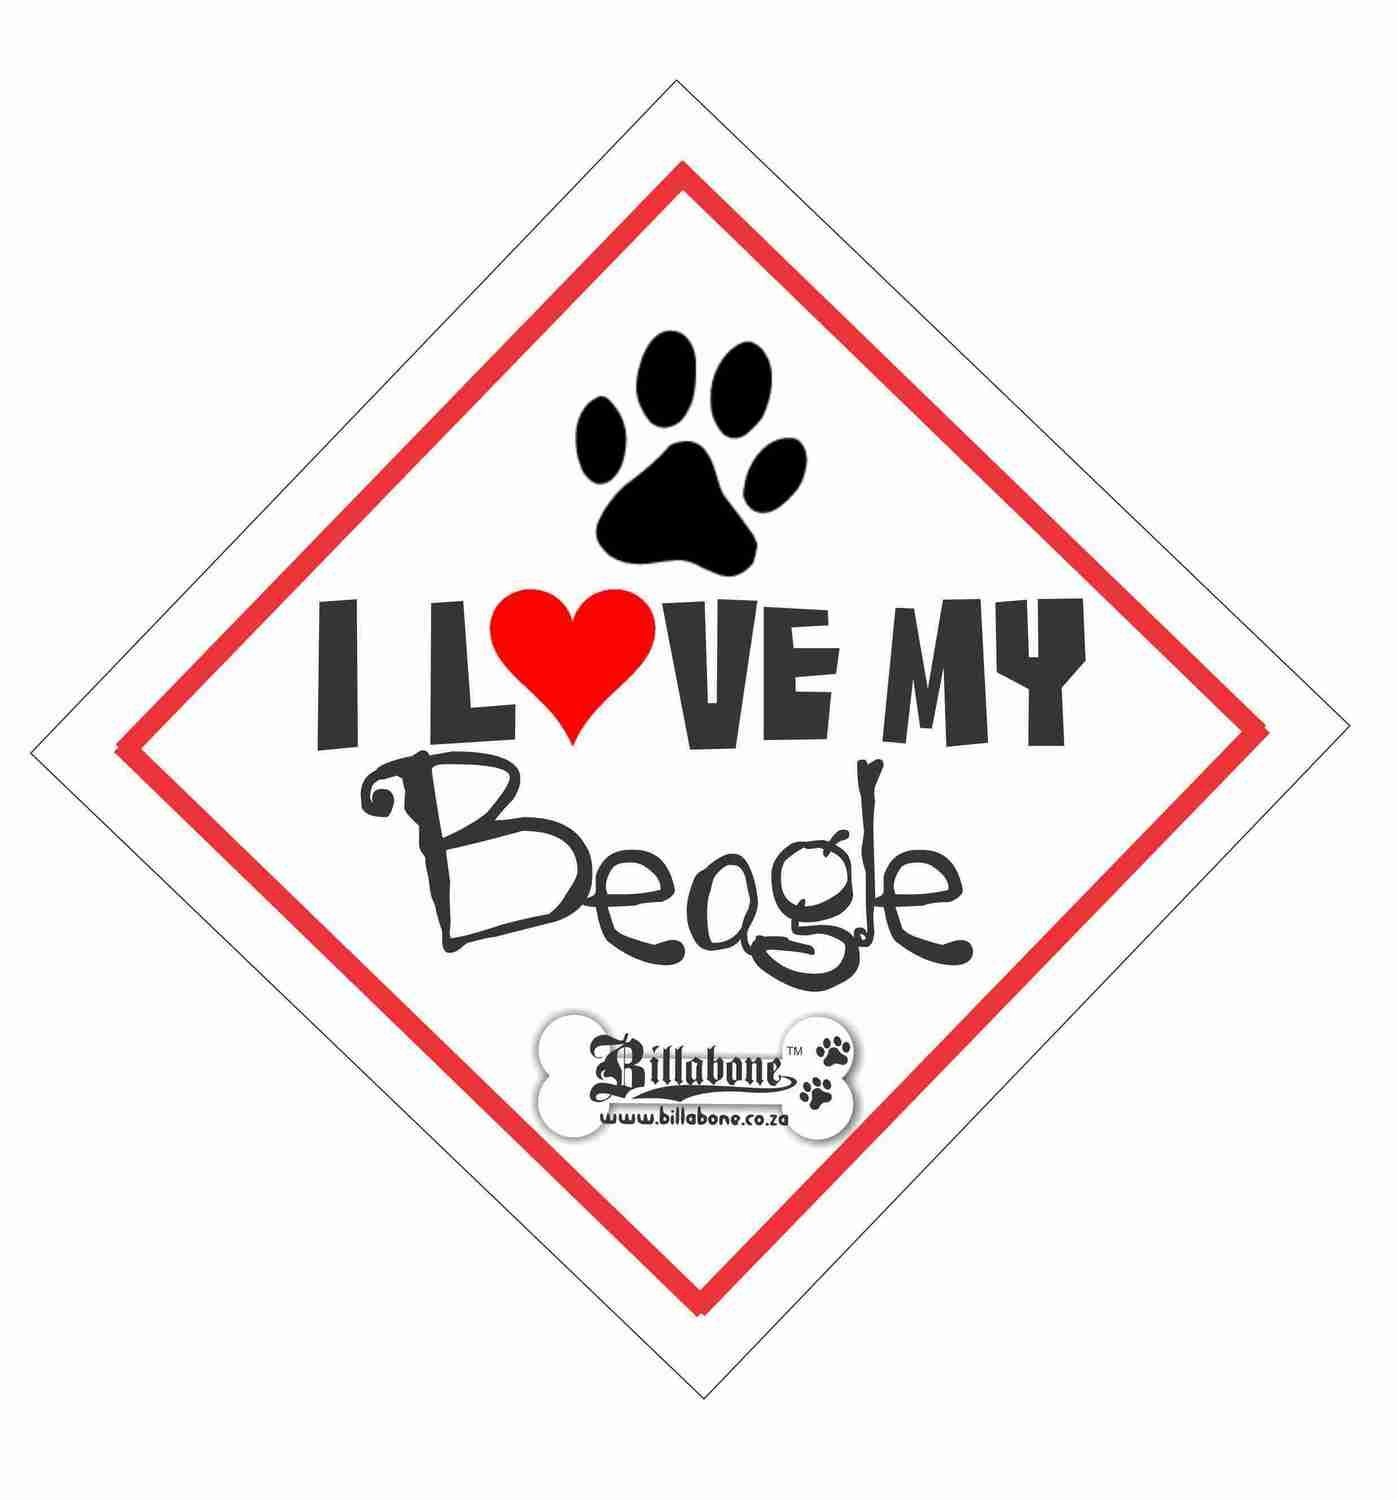 I love my Beagle On Board Sign or Sticker